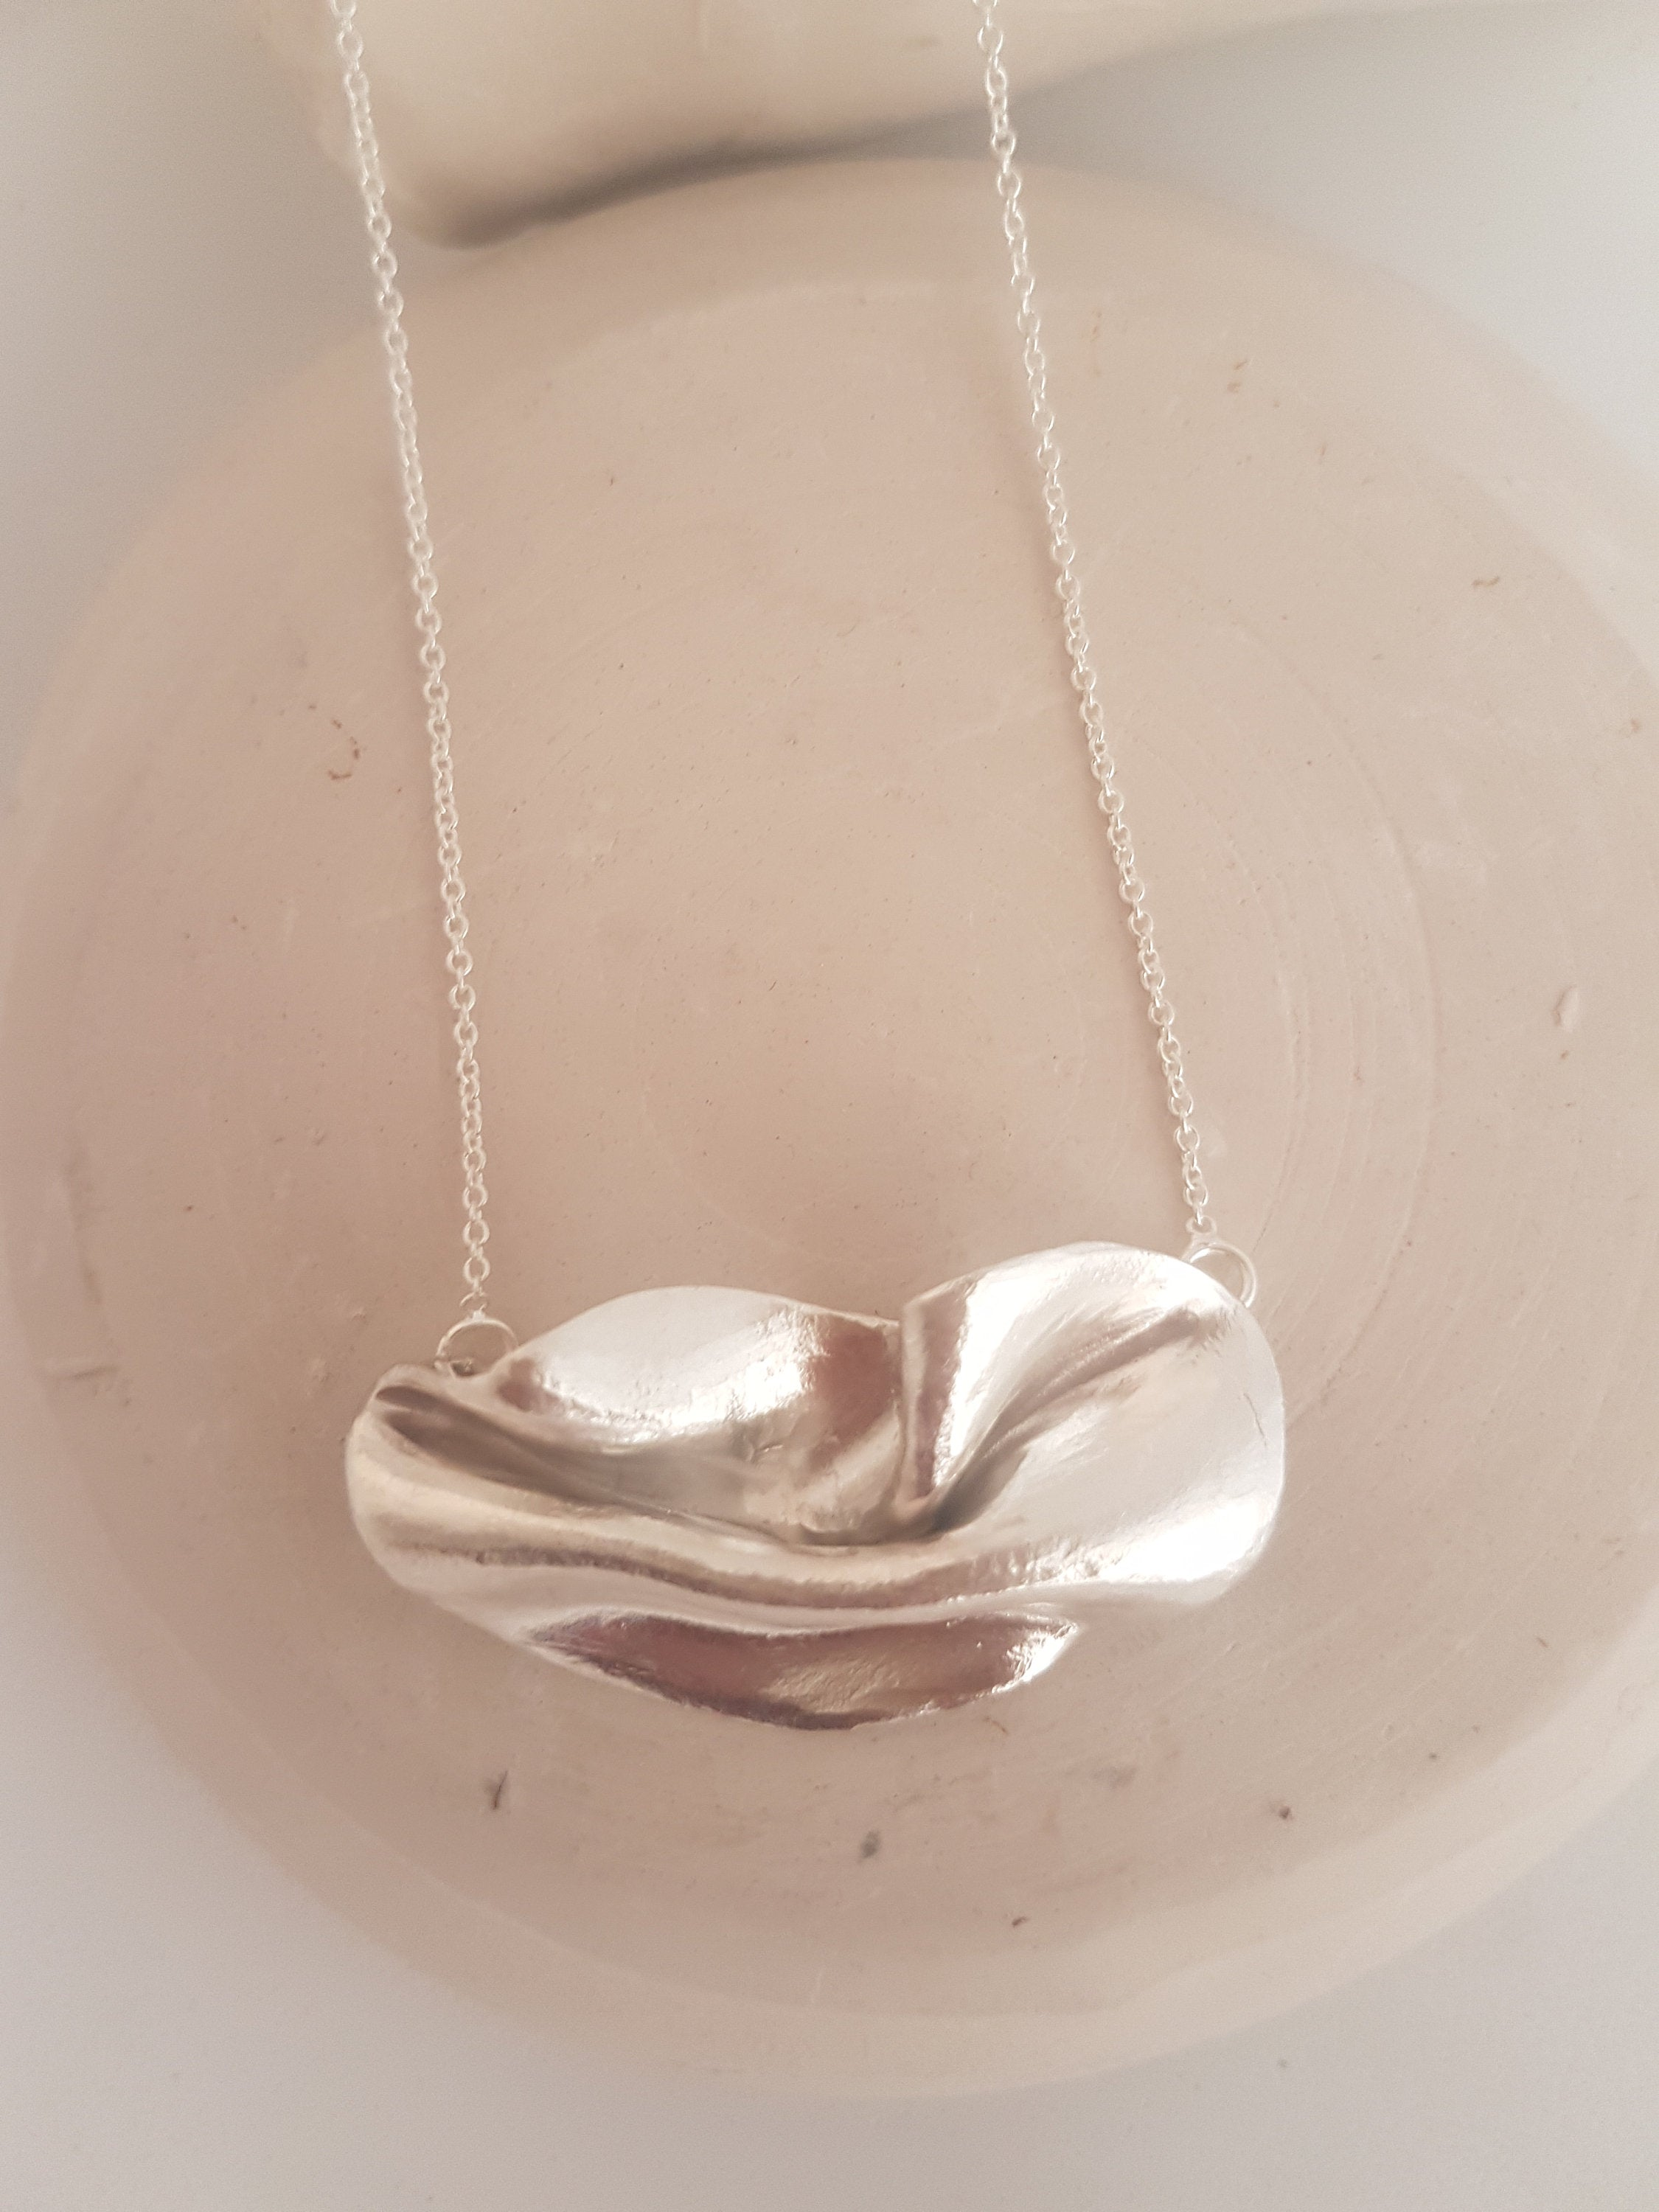 Wavy necklace in sterling silver. Artistic necklace for an elegant woman